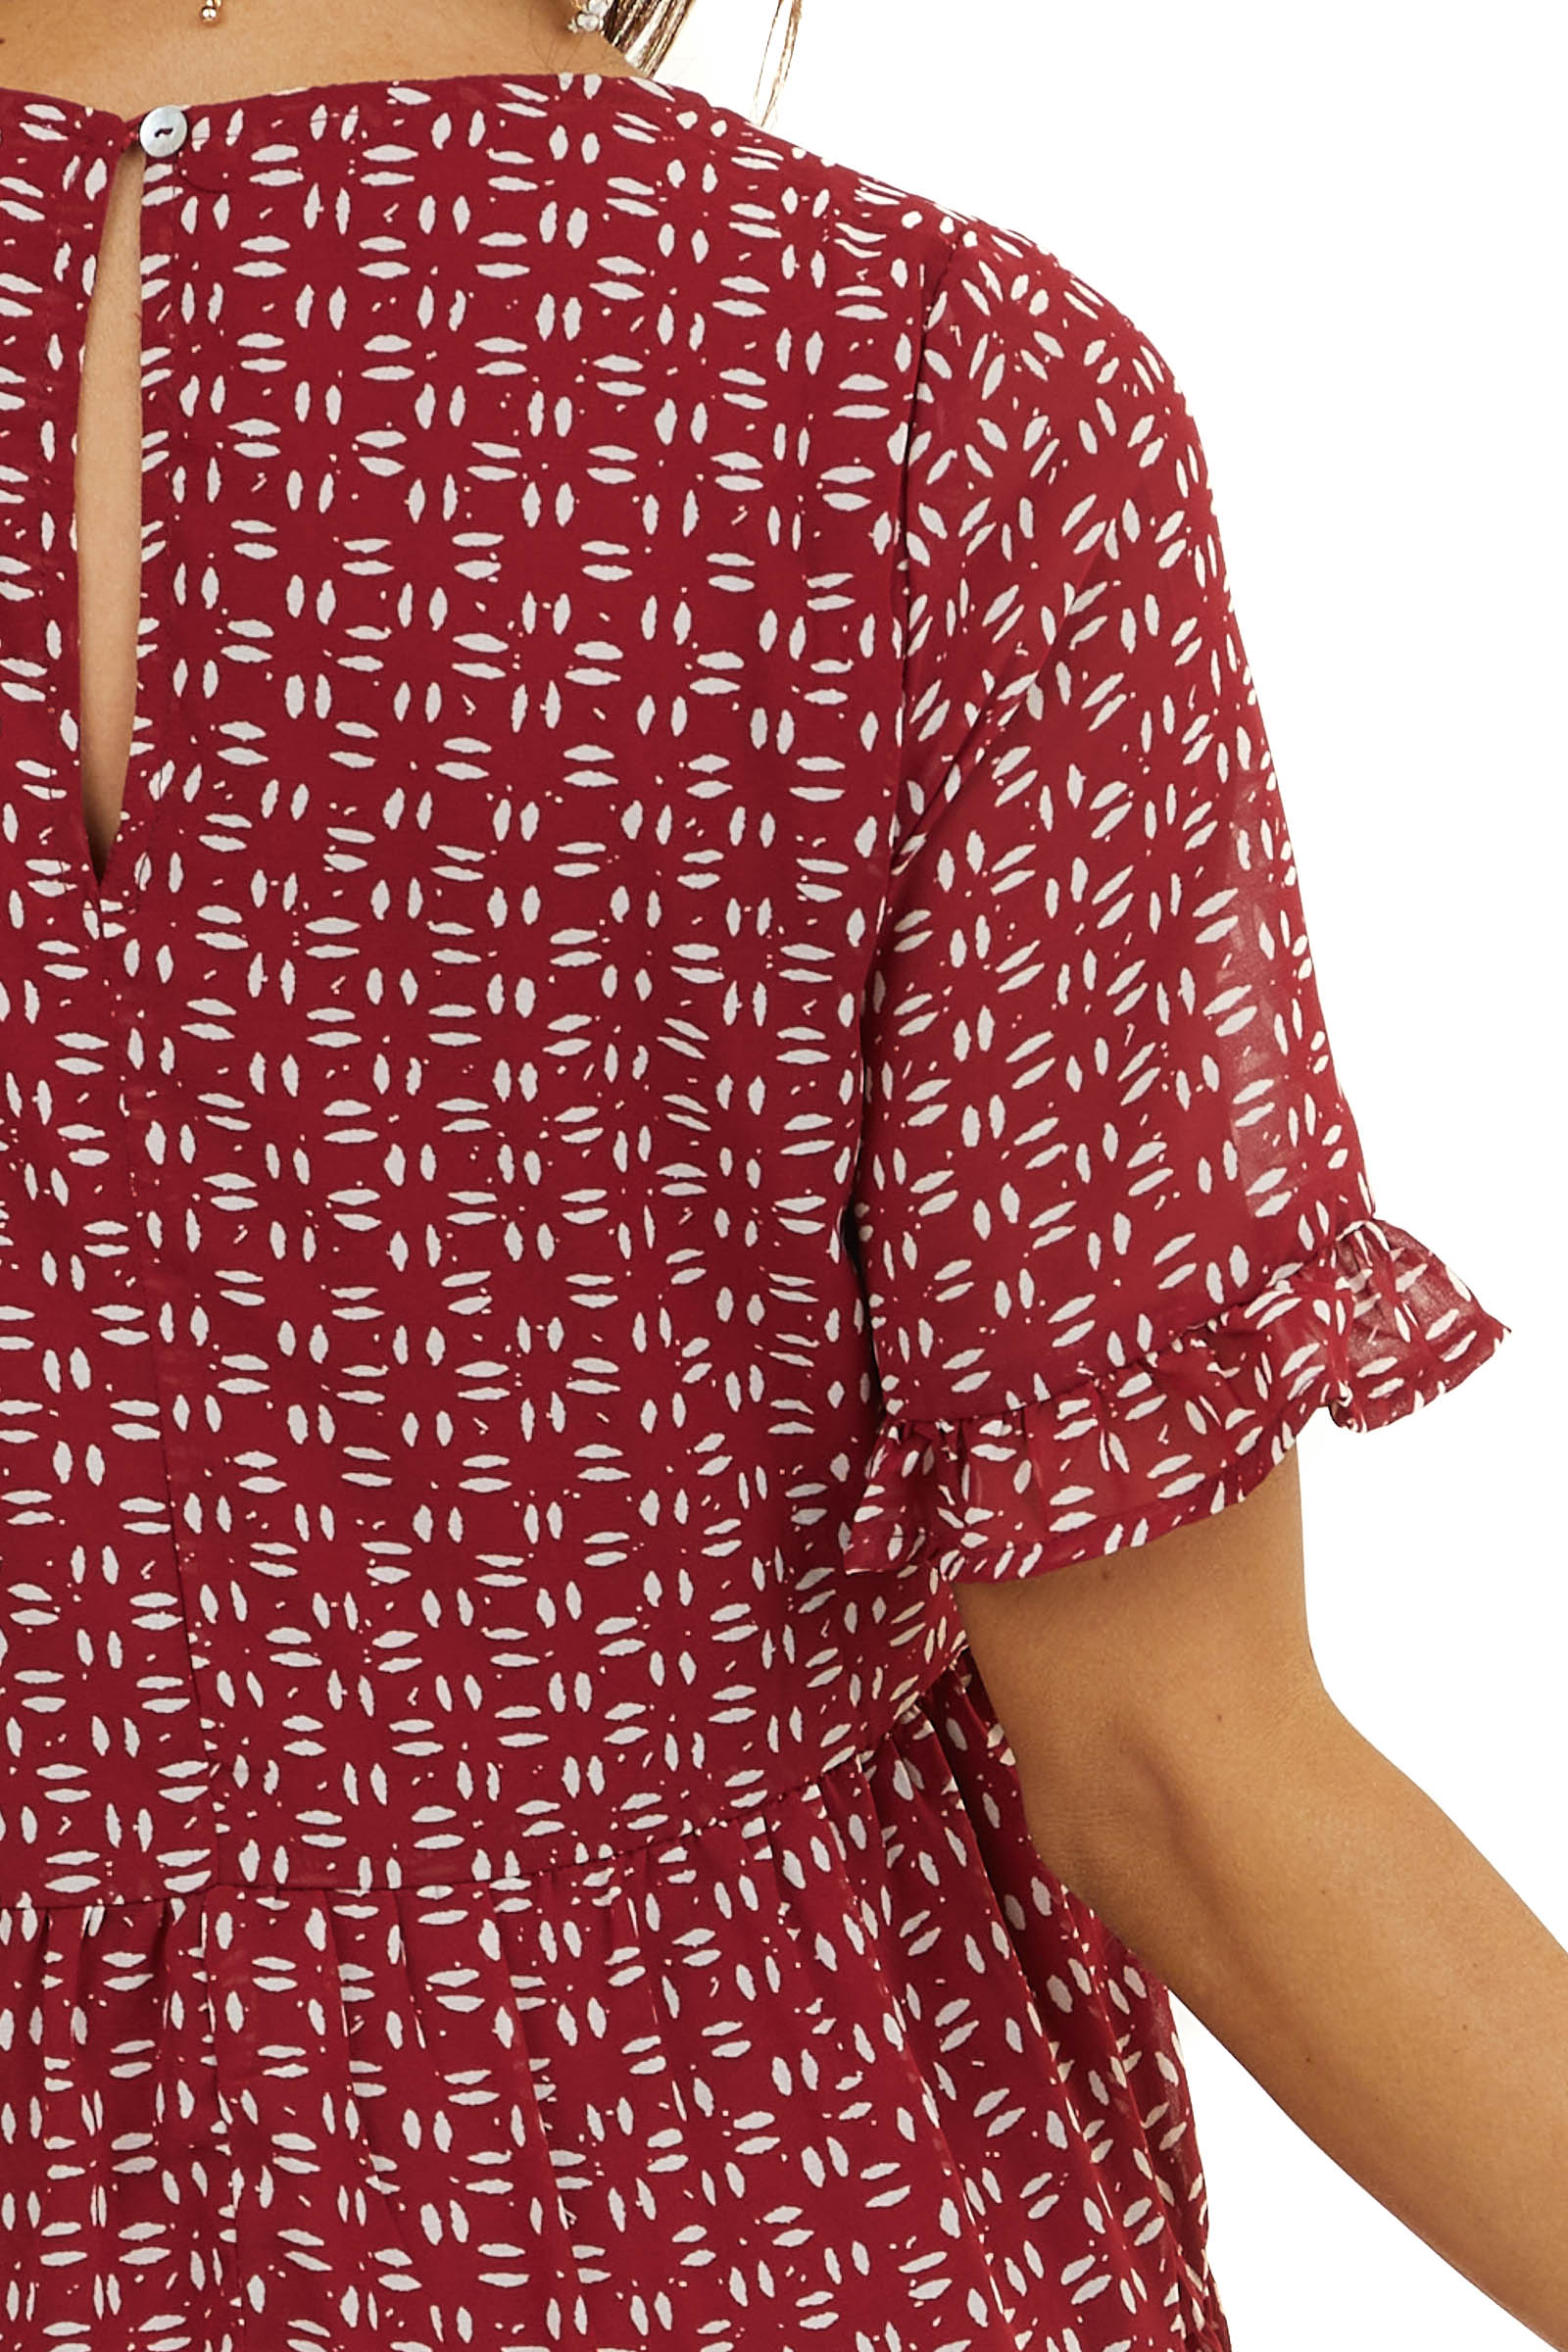 Maroon and Ivory Patterned Dress with Short Ruffled Sleeves